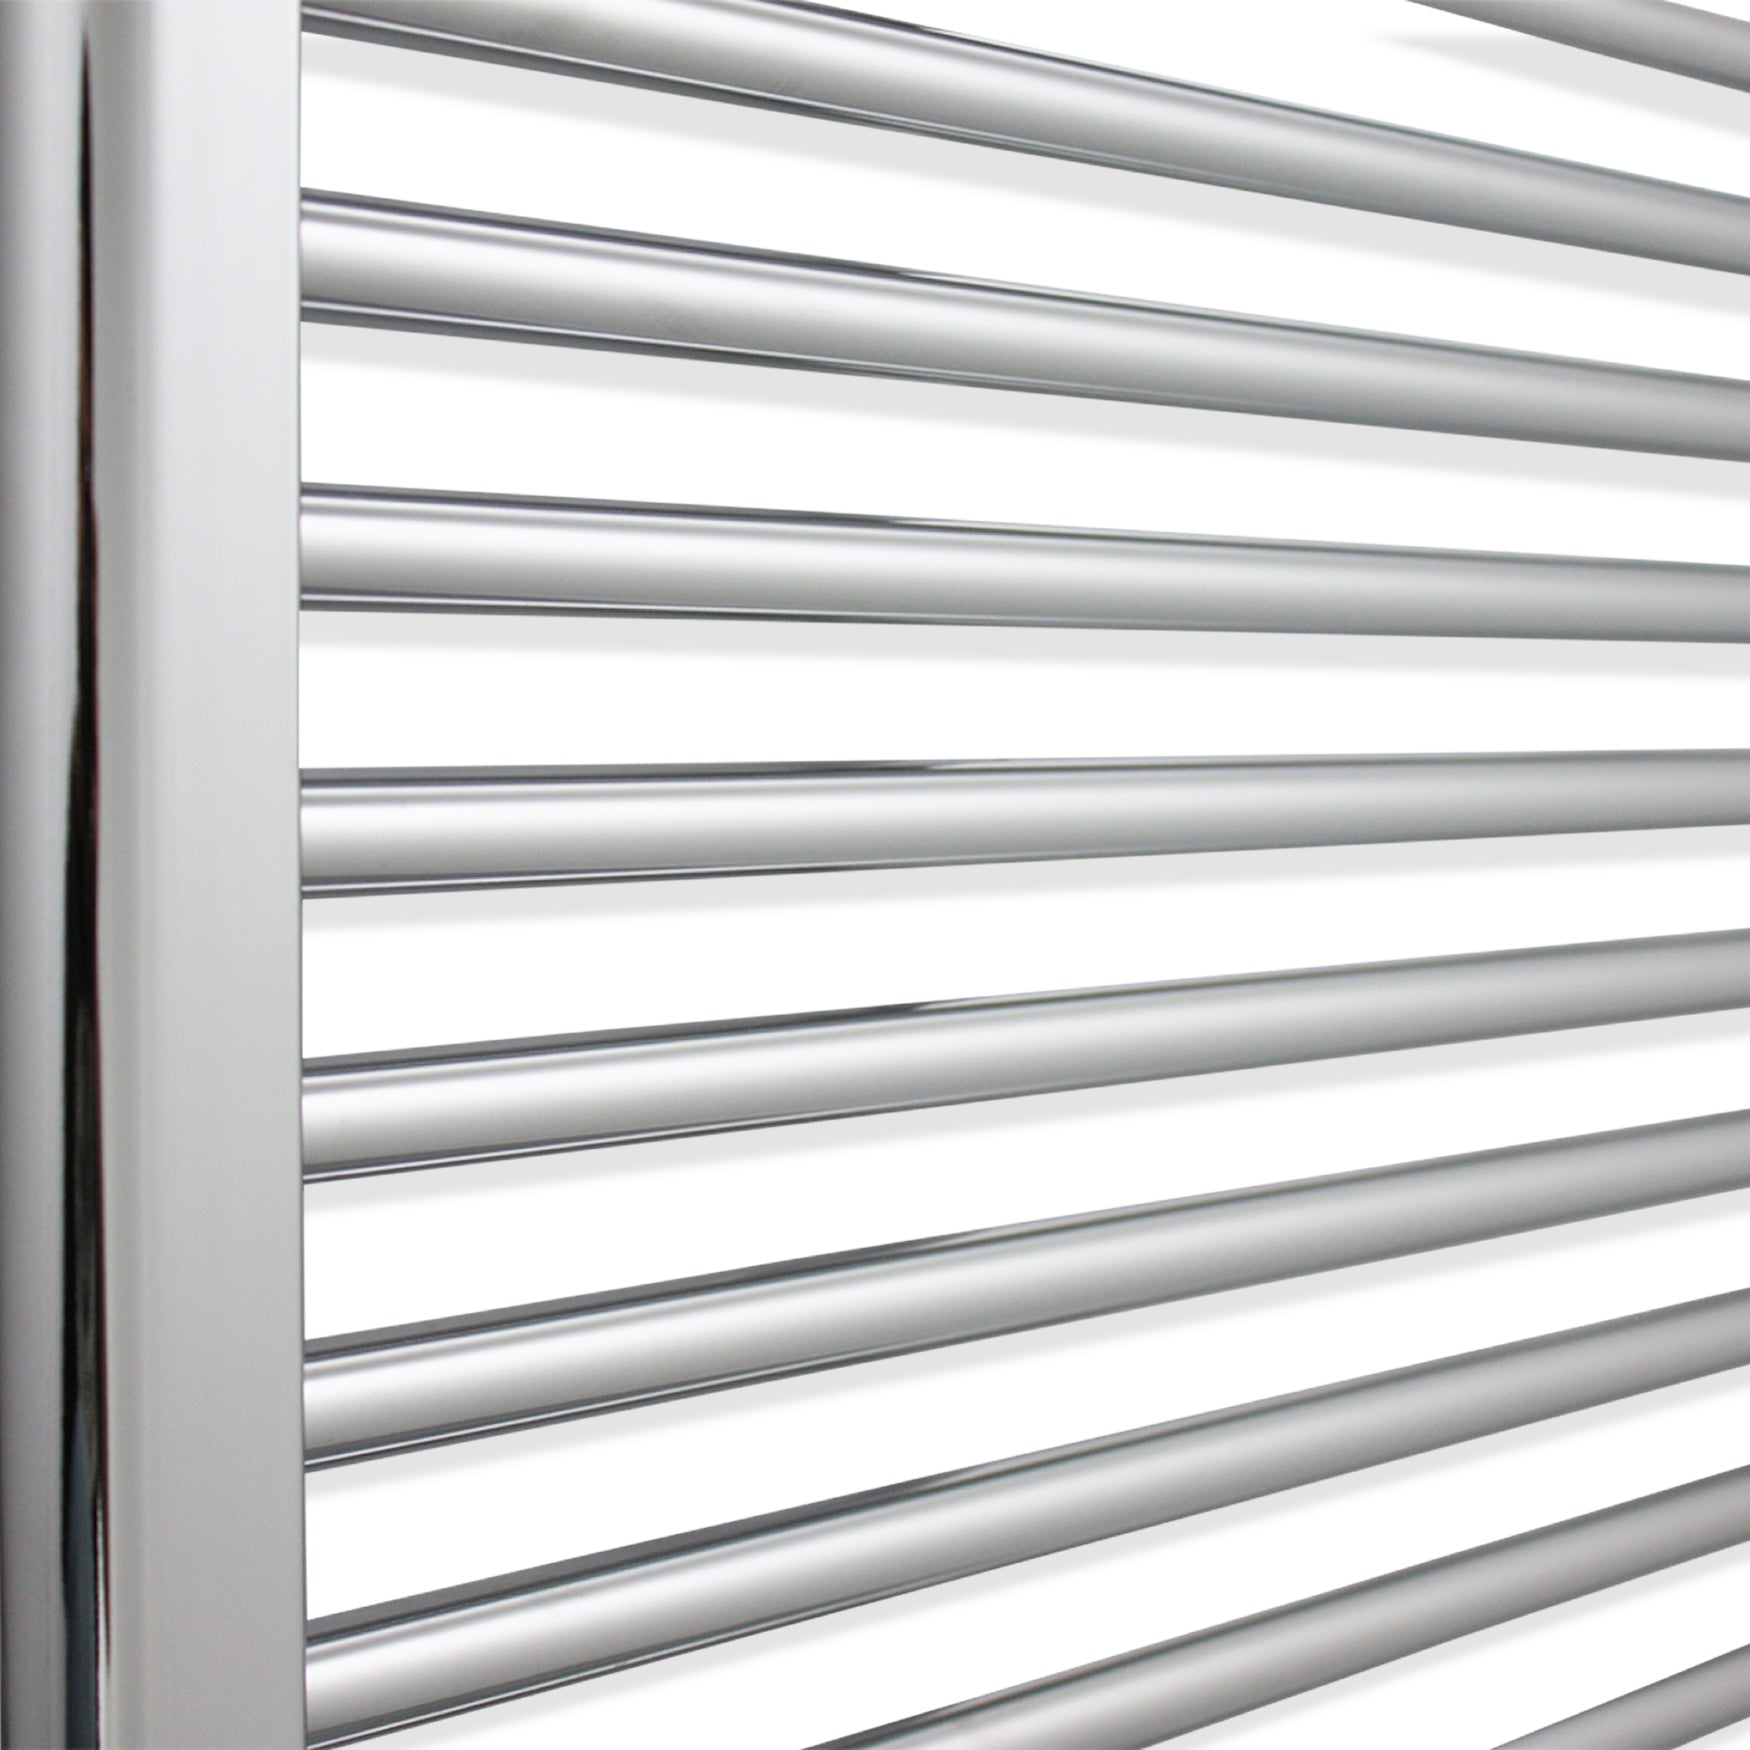 950mm Wide 1200mm High Flat Chrome Heated Towel Rail Radiator HTR